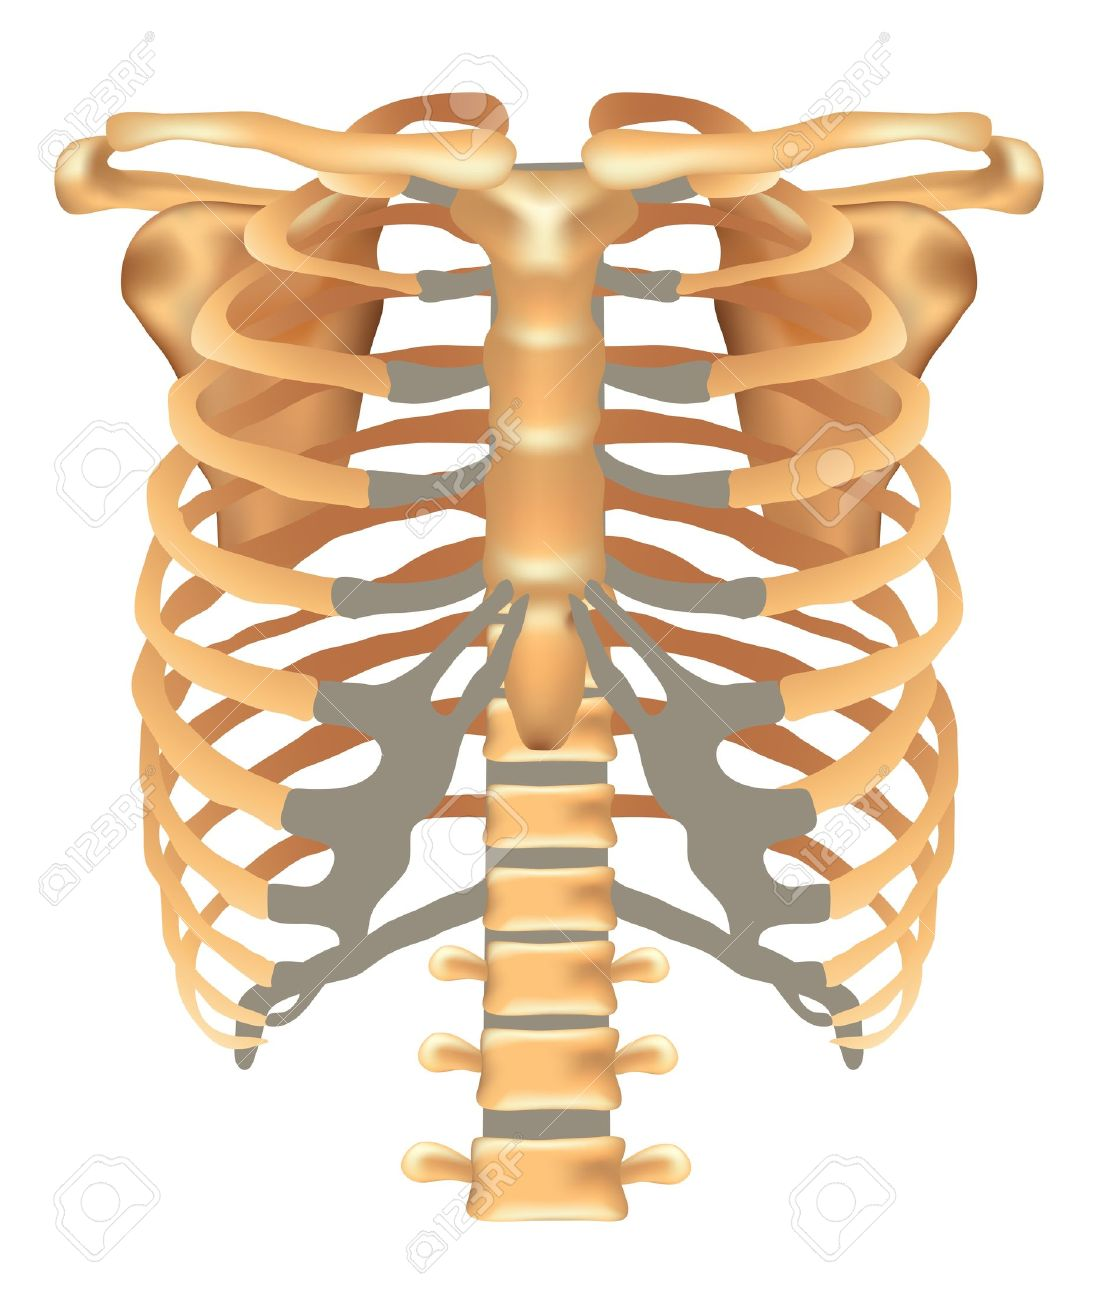 Thorax ribs sternum clavicle scapula vertebral column thorax ribs sternum clavicle scapula vertebral column detailed medical illustration isolated pooptronica Gallery